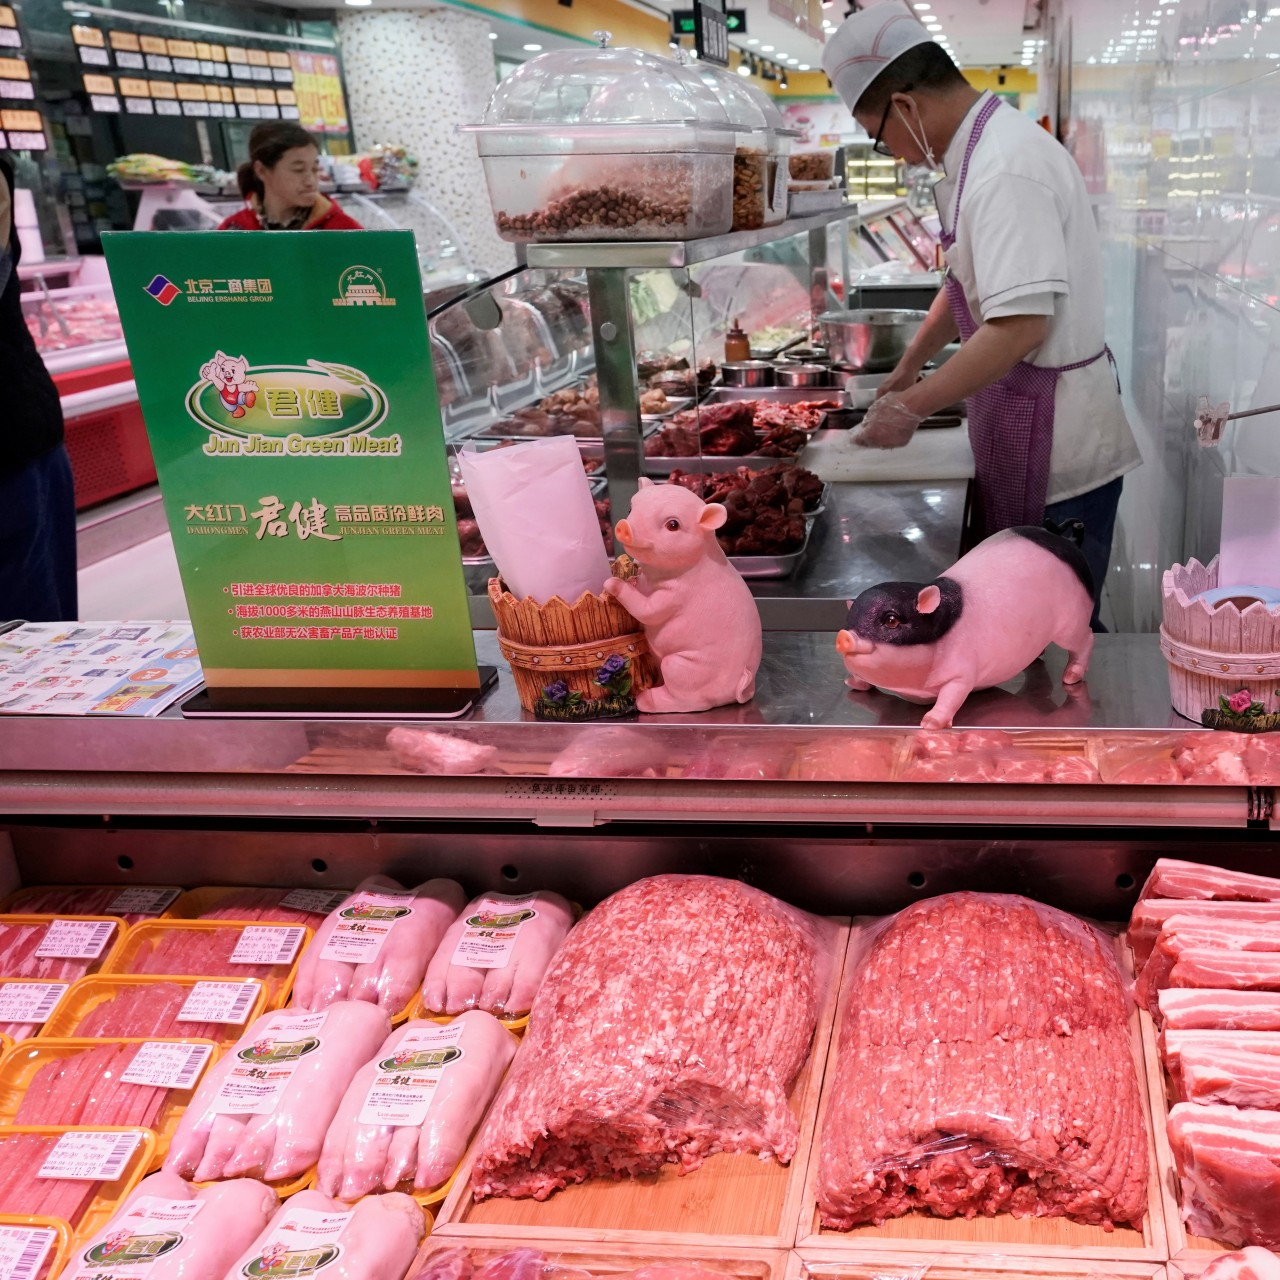 China's pork industry under threat as African swine fever